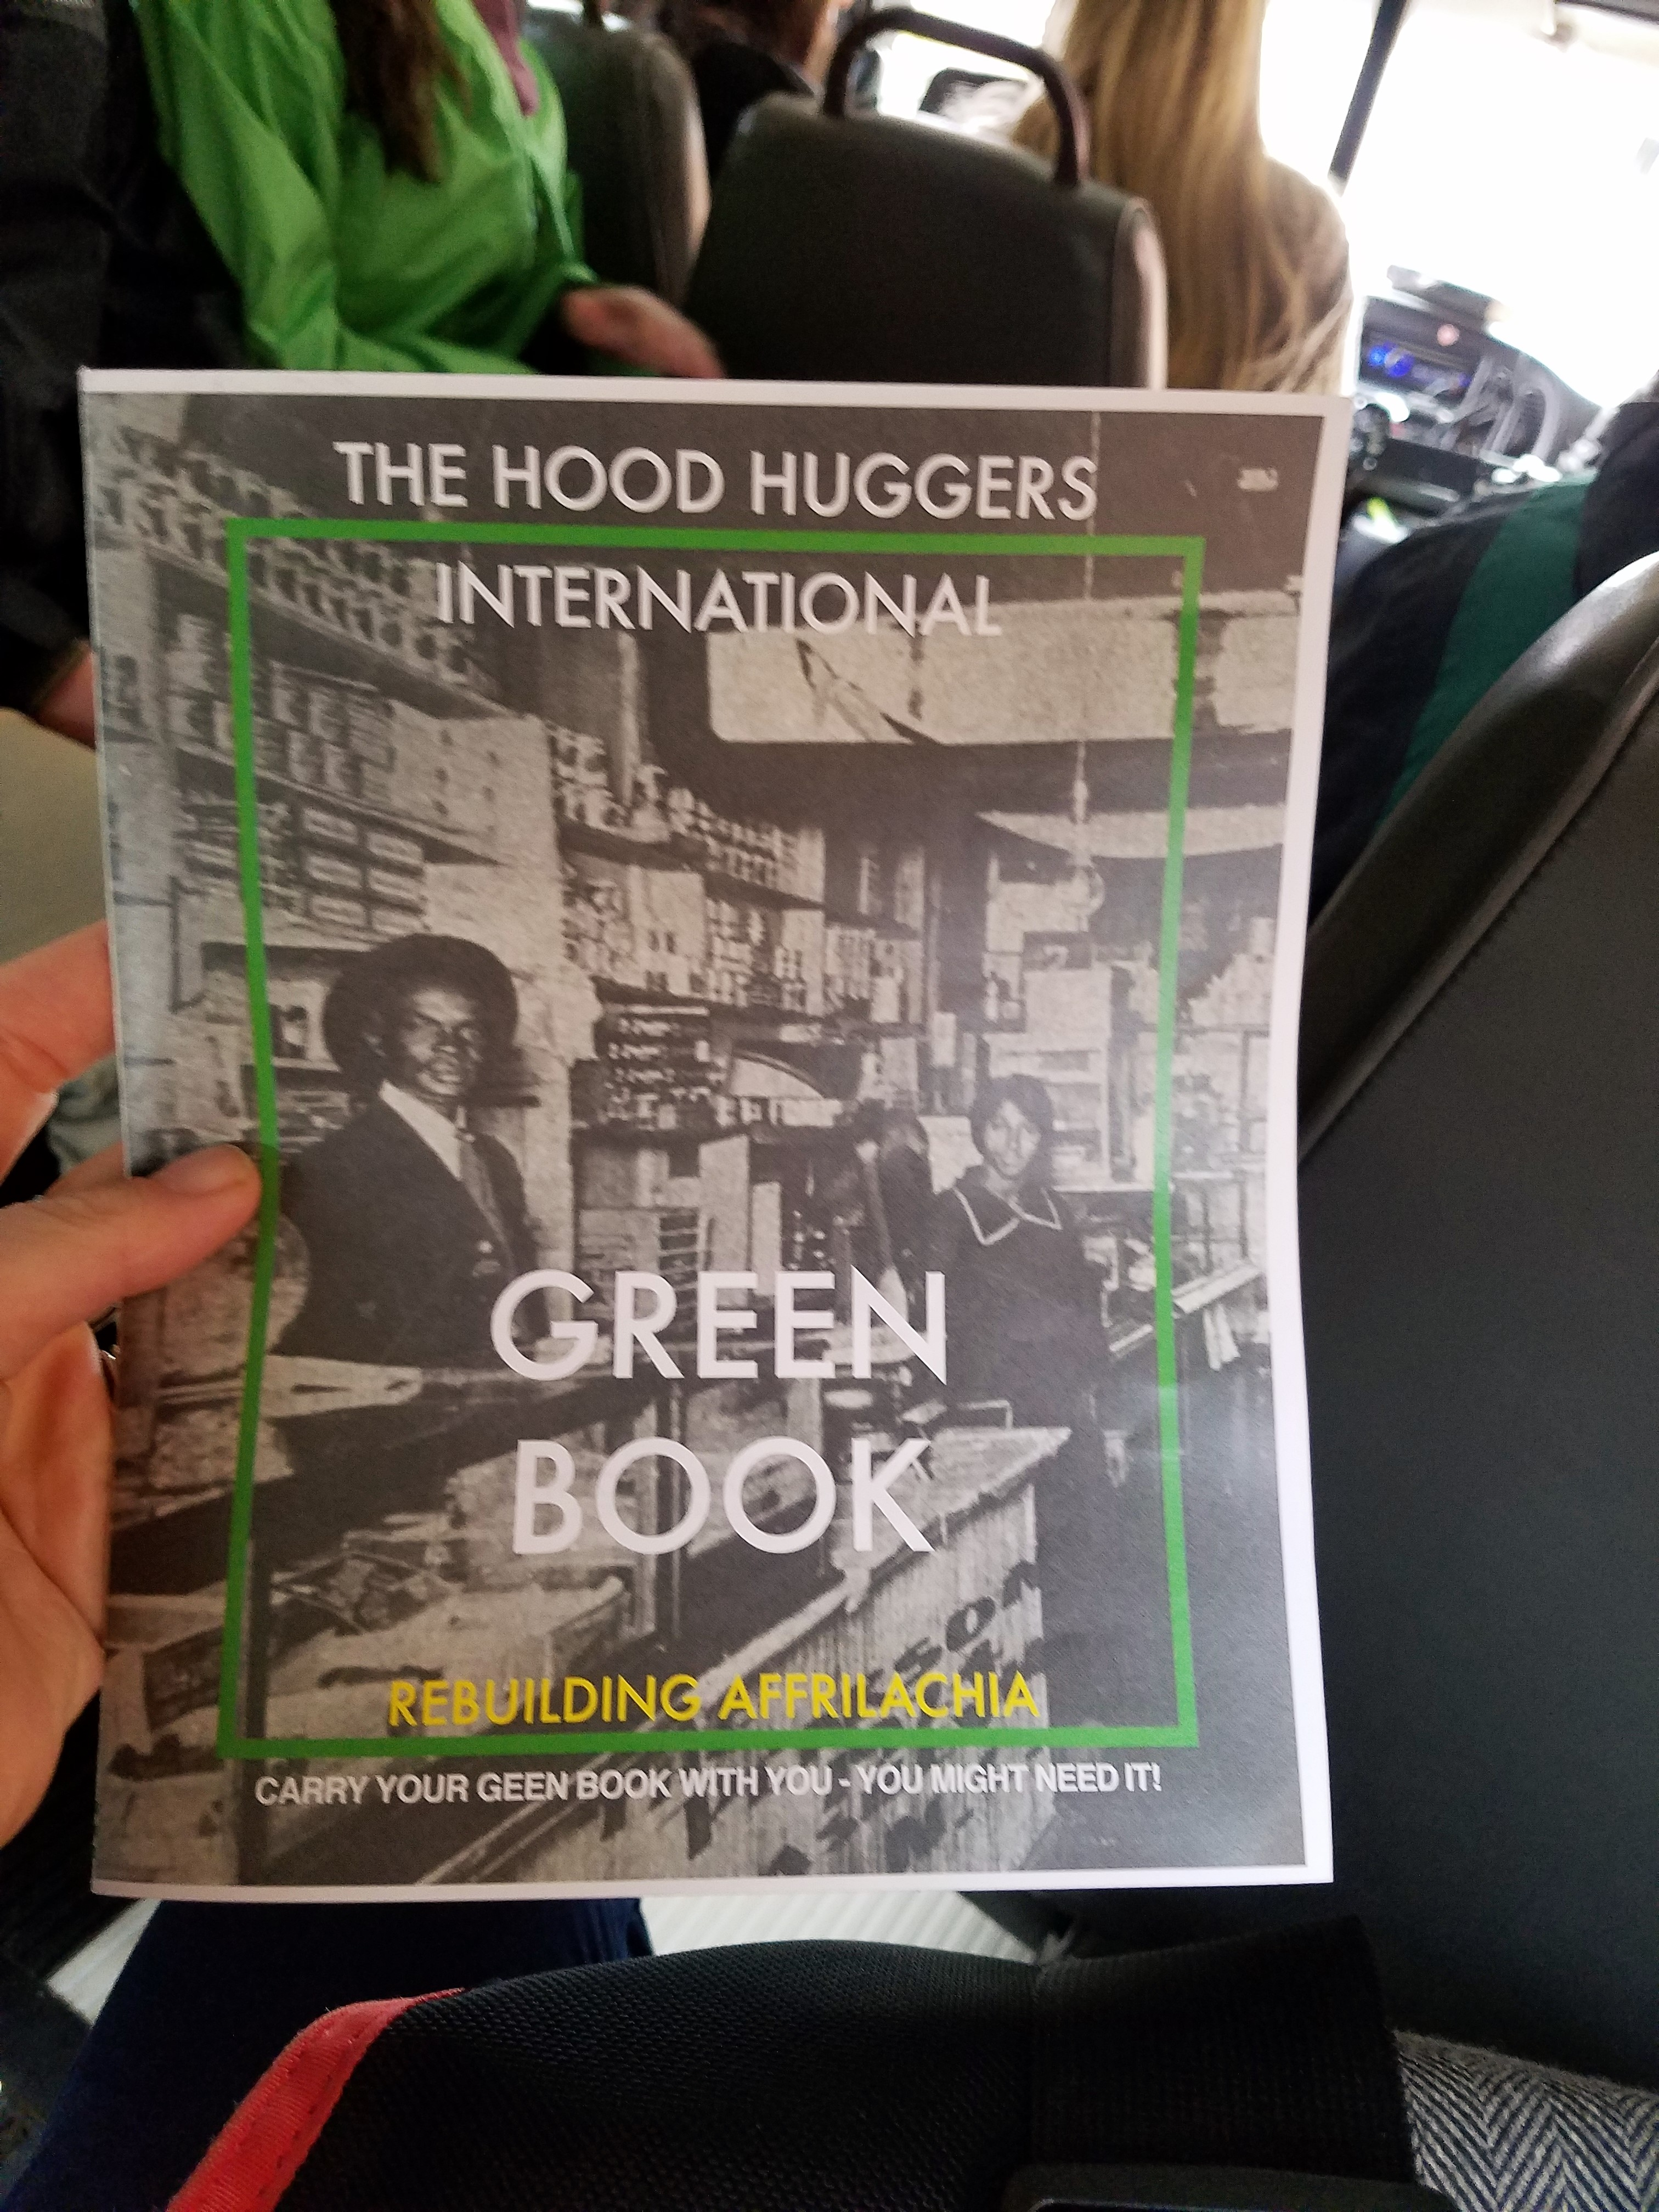 The Hood Huggers International Green Book was created to highlight African American-owned organizations and businesses.